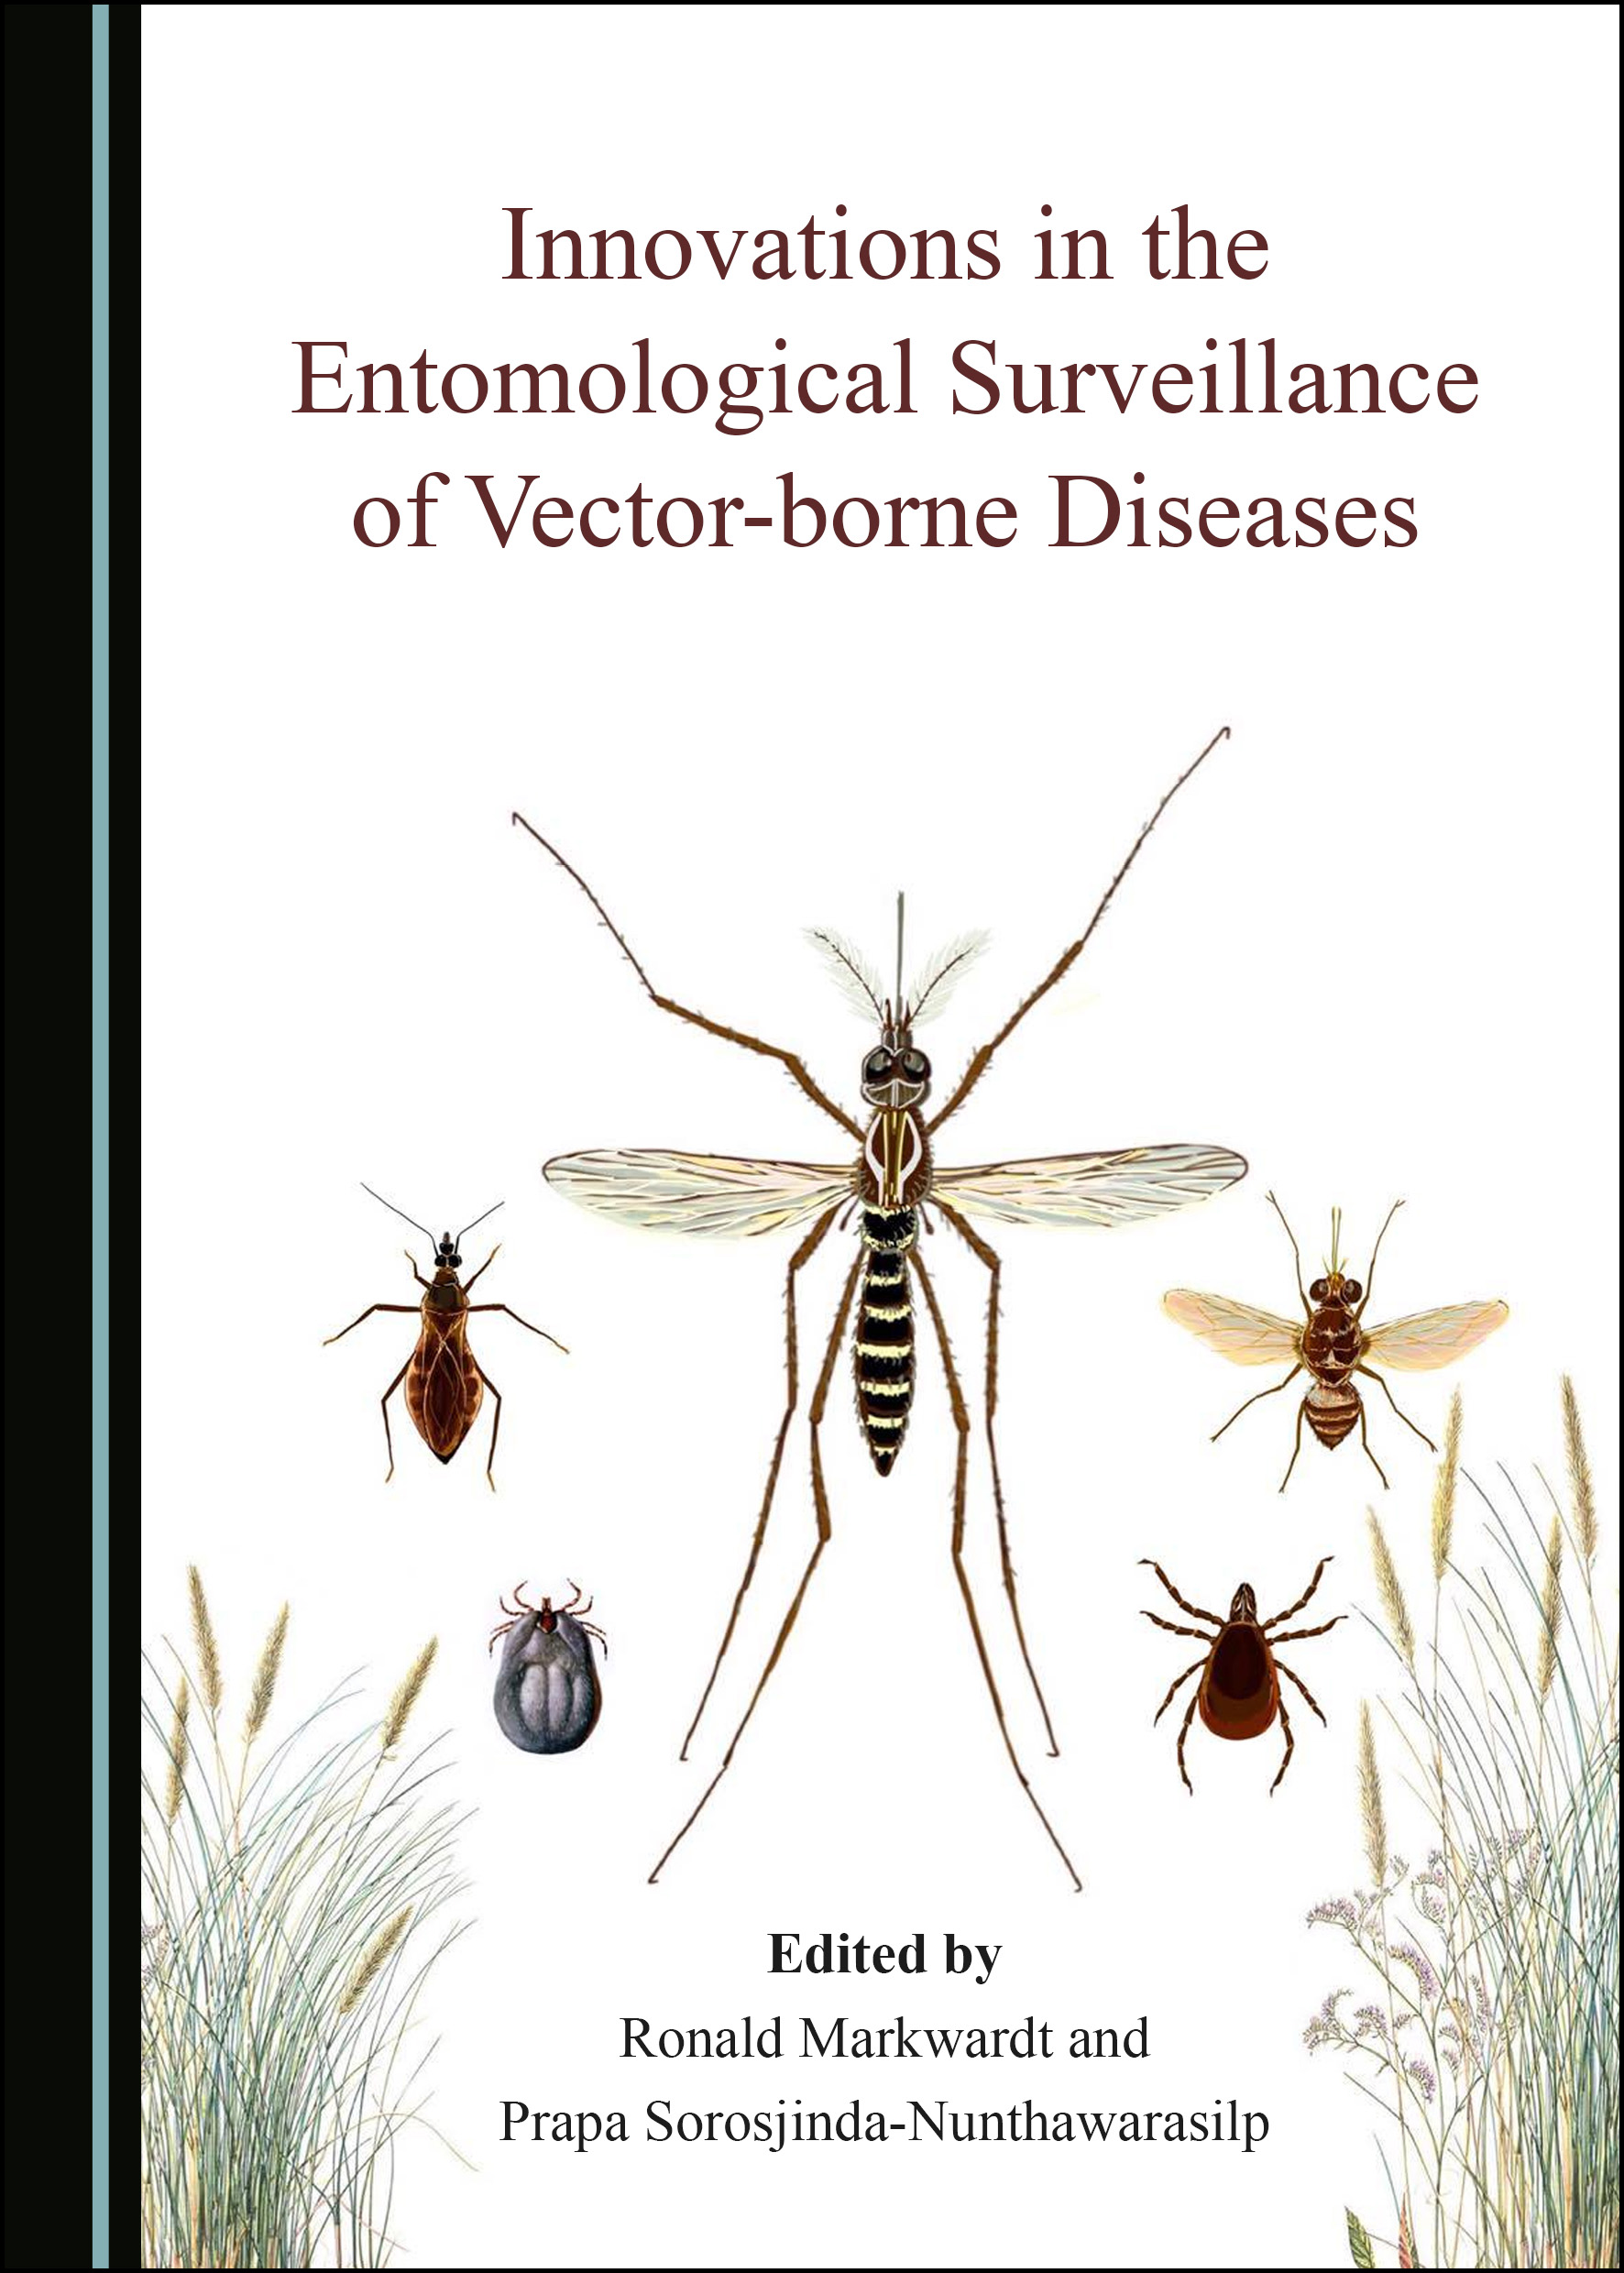 Innovations in the Entomological Surveillance of Vector-borne Diseases